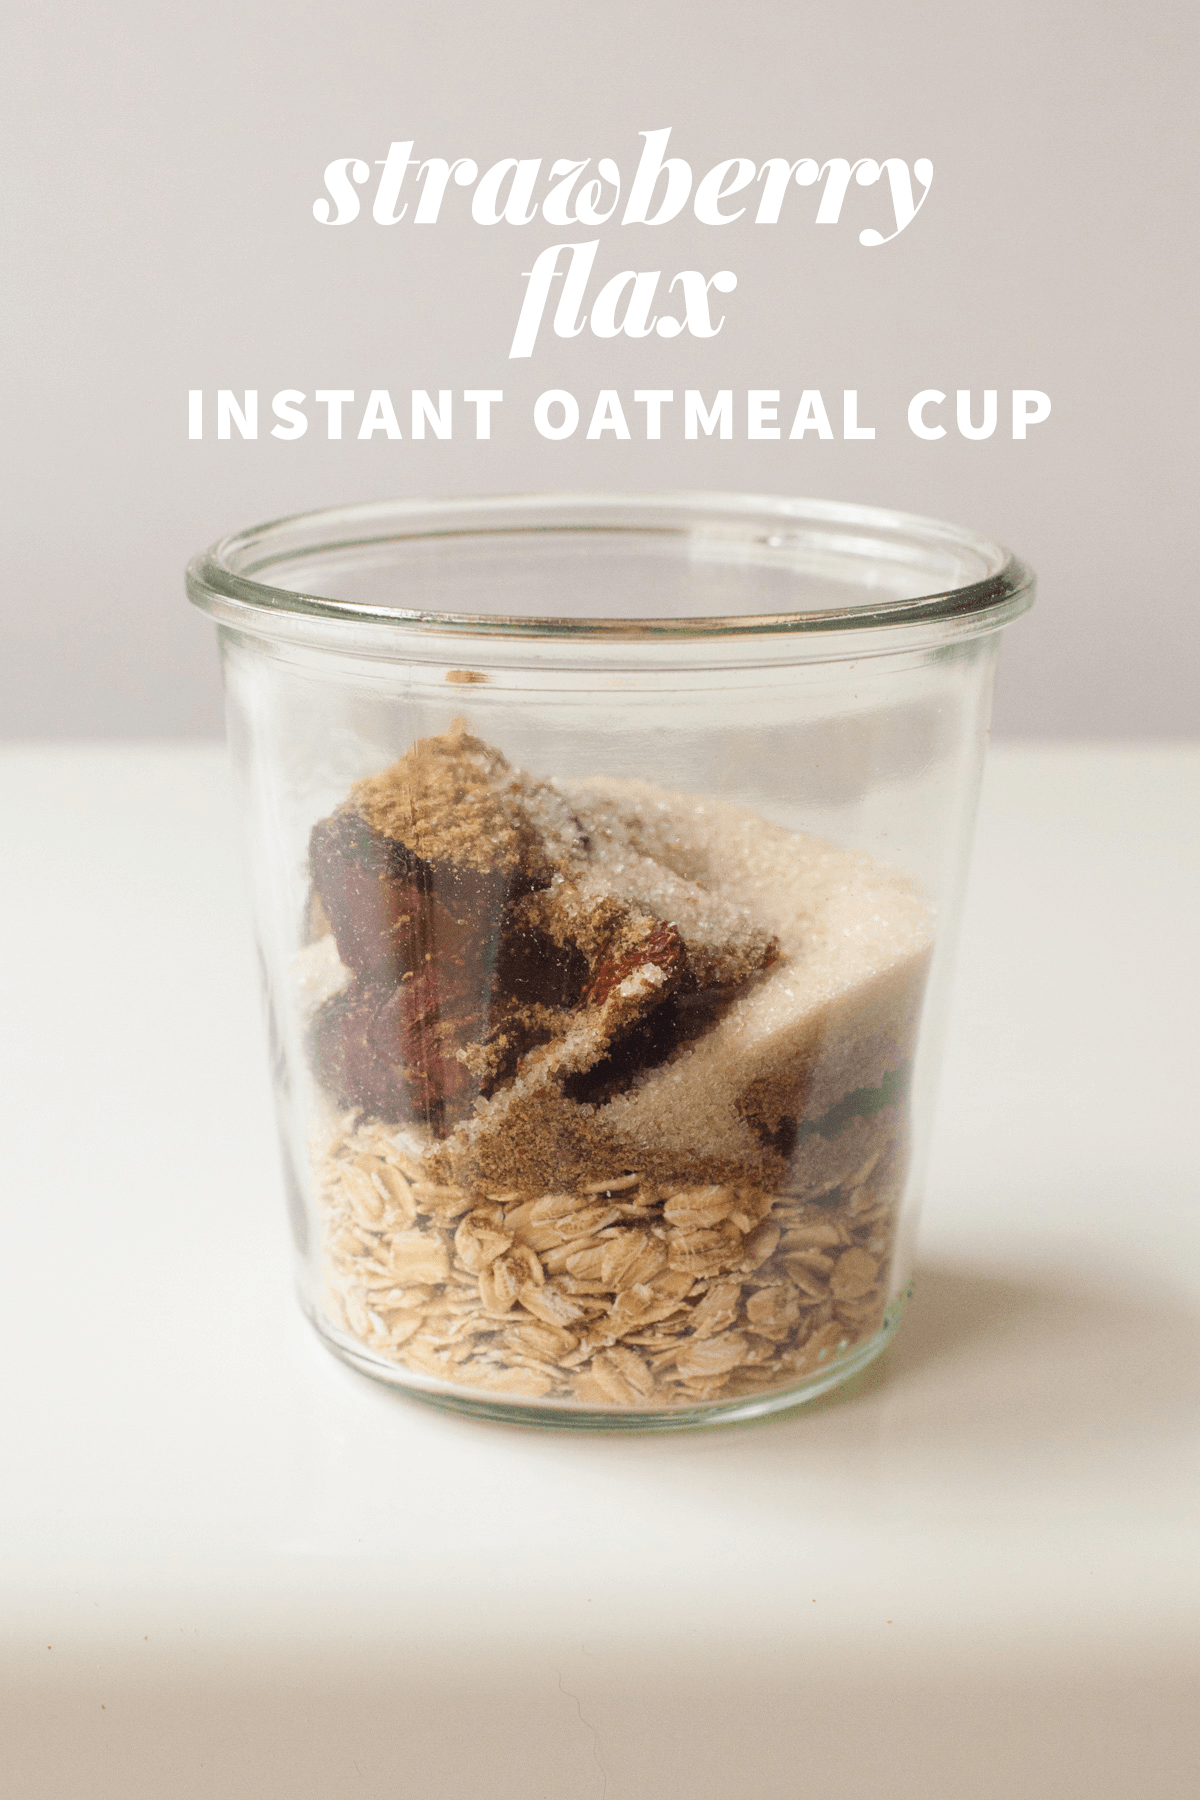 Healthy Instant Oatmeal Cups—Strawberry Flax